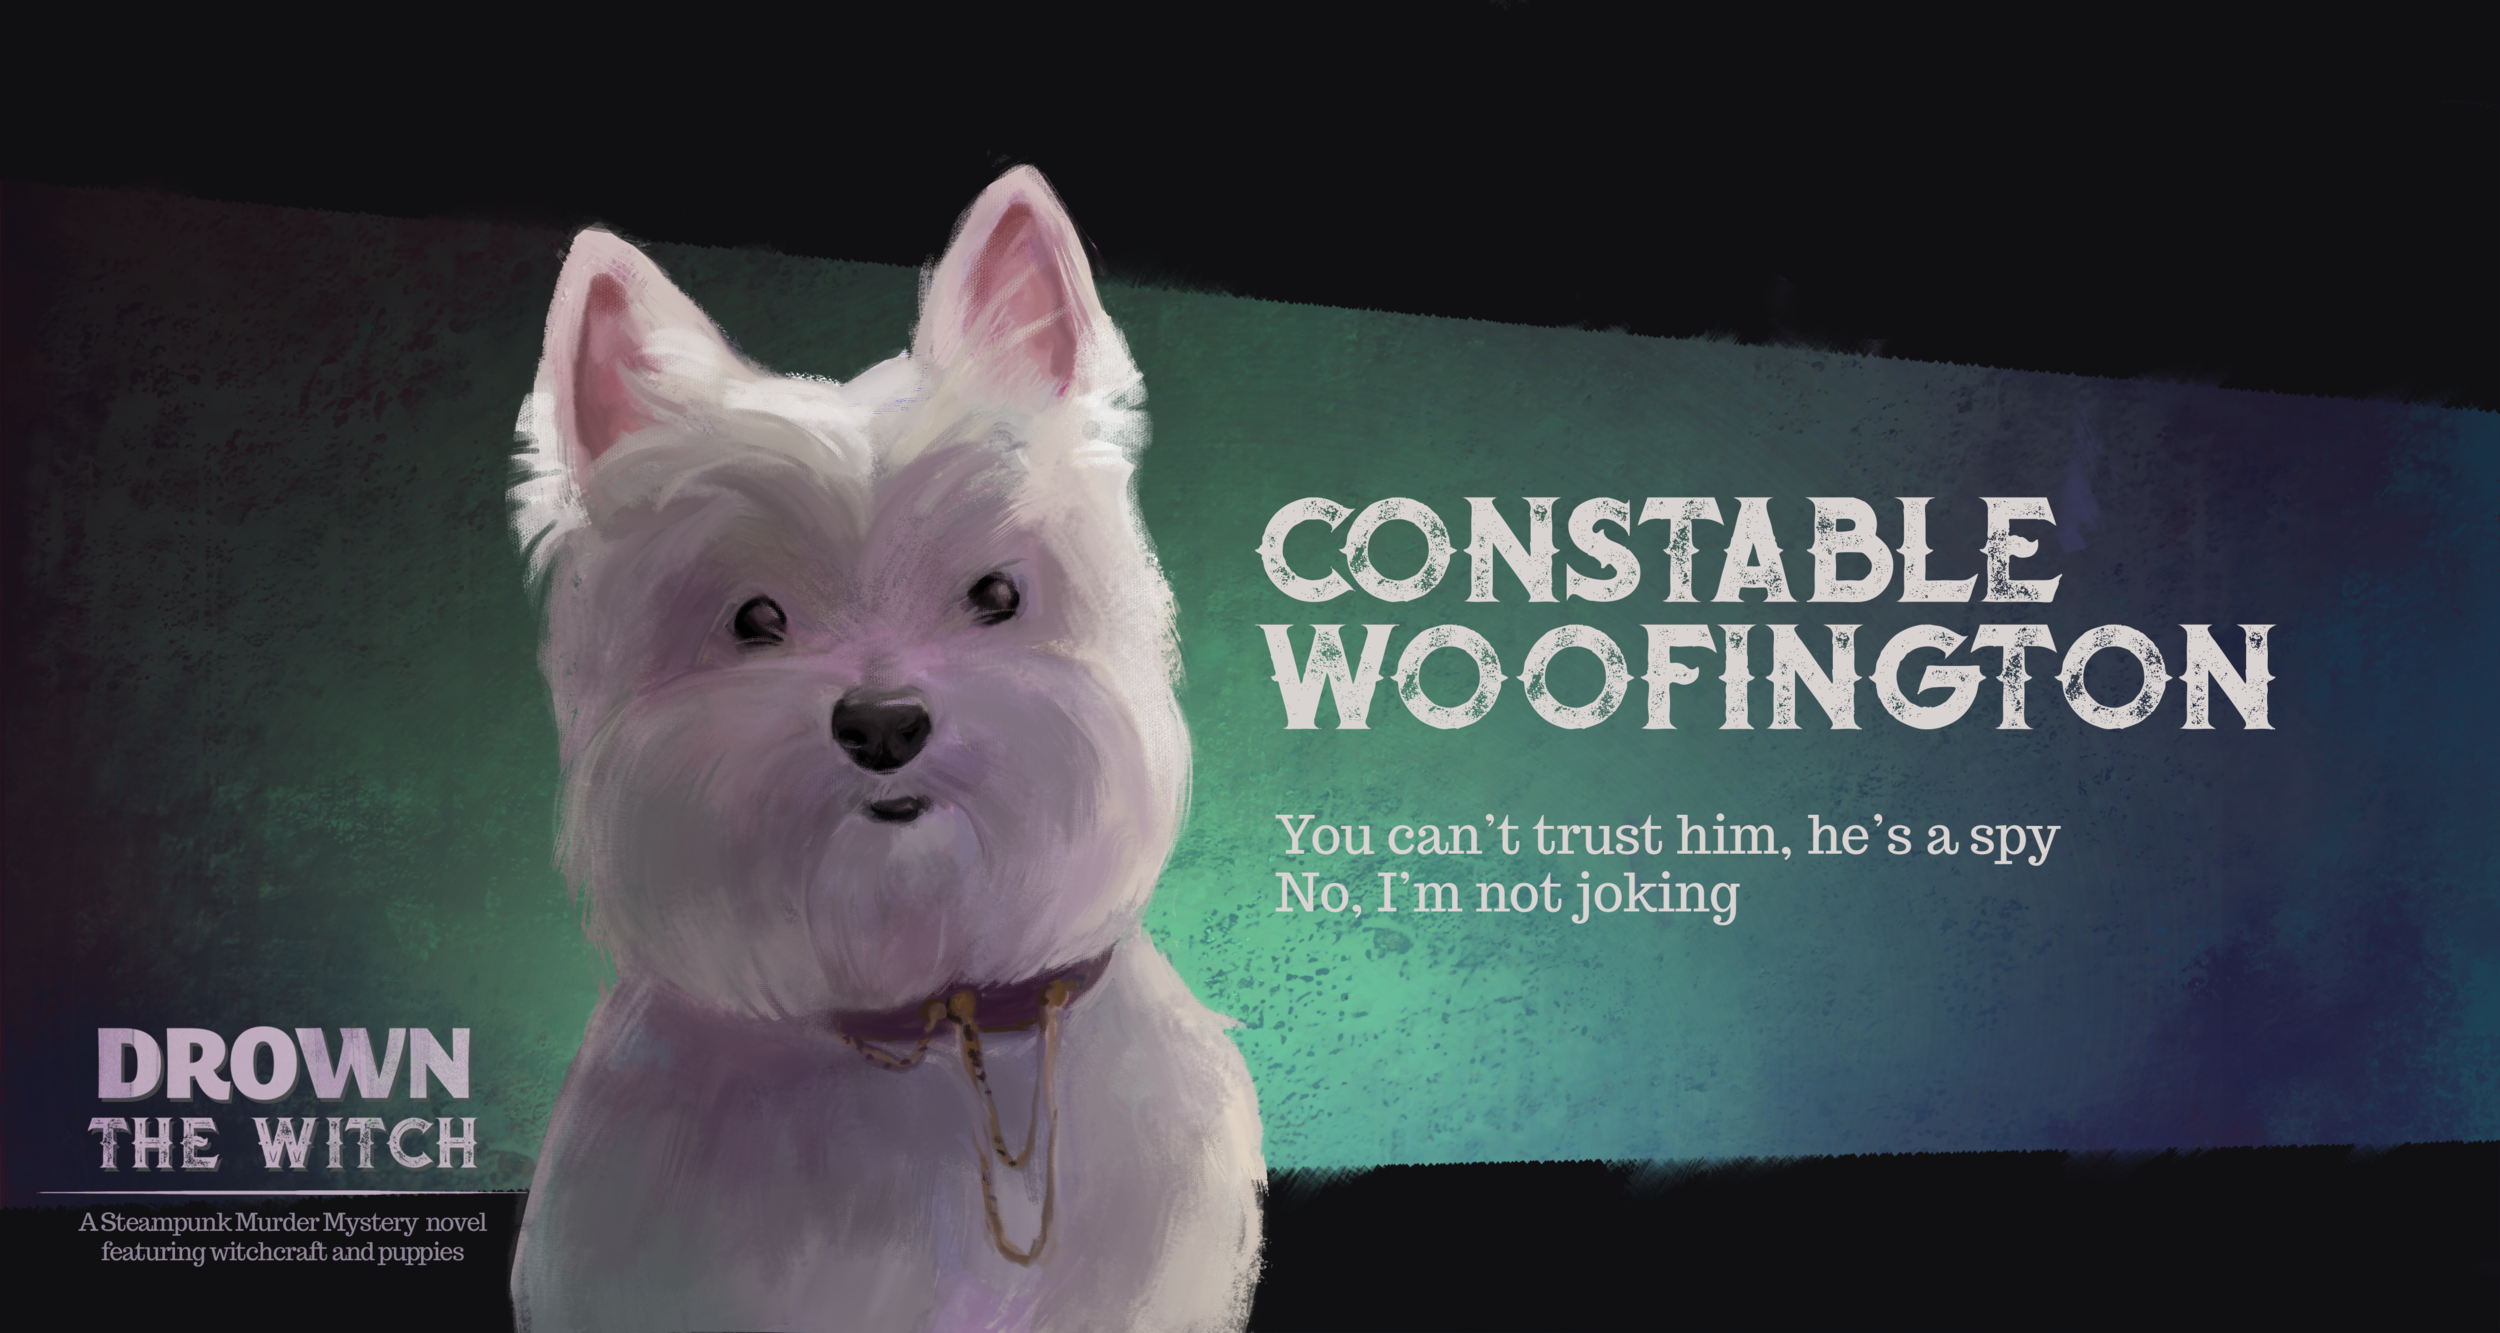 Constable Woofington